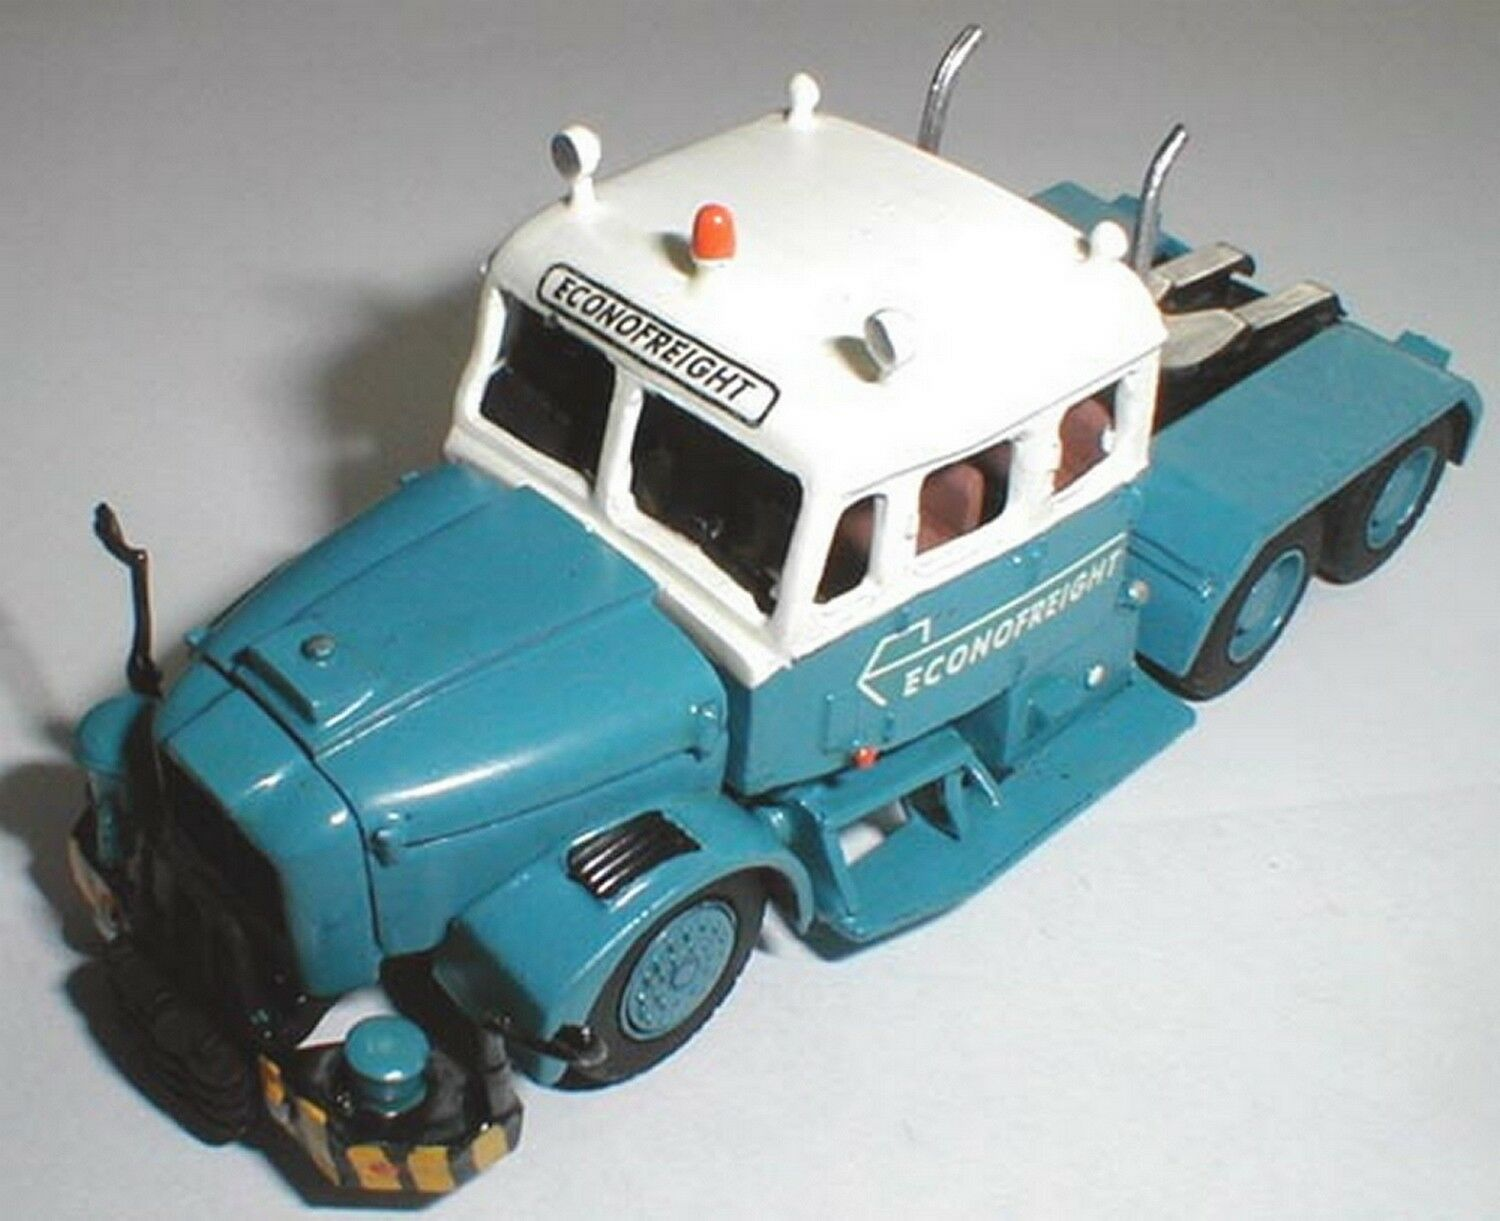 Scammell Appaltatore Mark 1 1964 Scala Oo Non Verniciato Kit G138a Langley